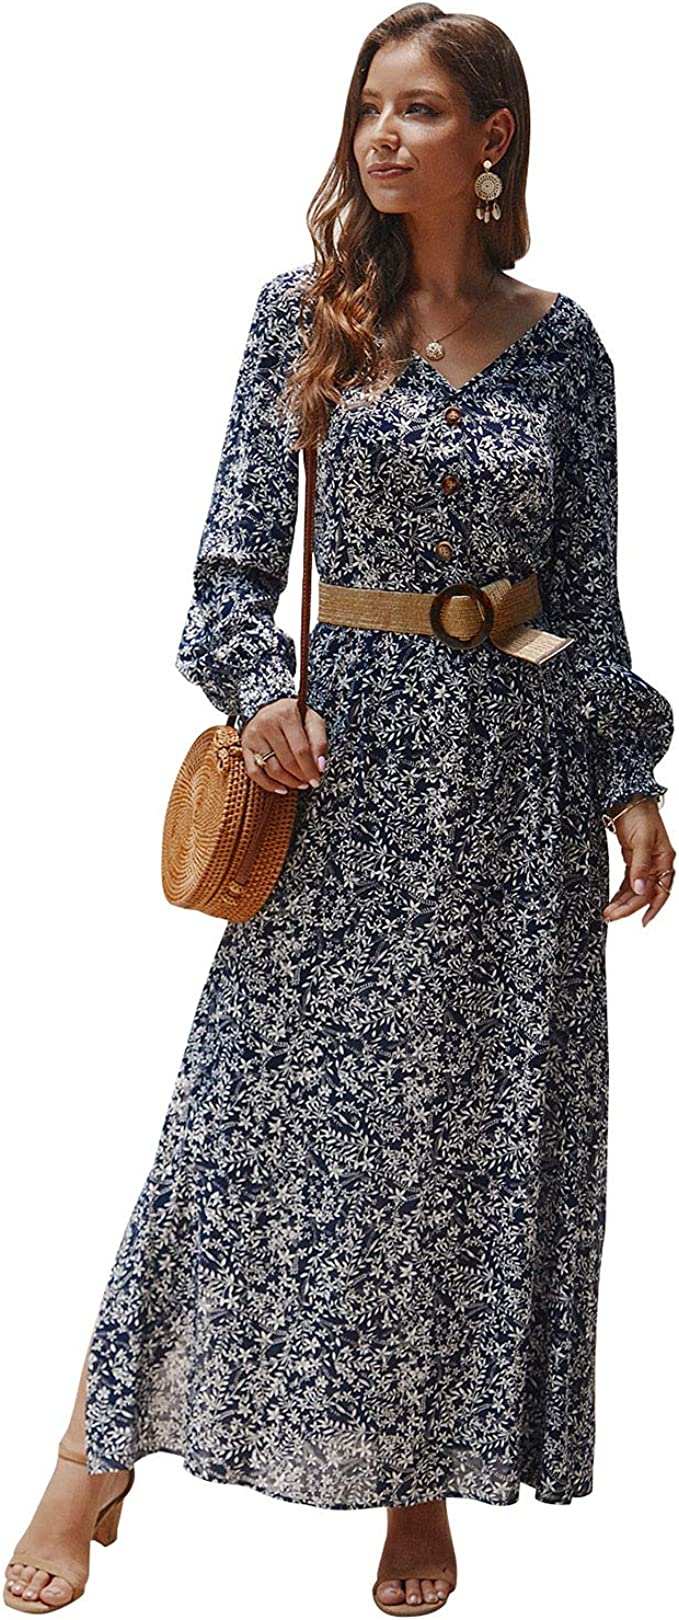 New Feeling Womens Dress 3//4 Sleeve Wrap V-Neck Floral Printed Maxi Long Dress with Sash